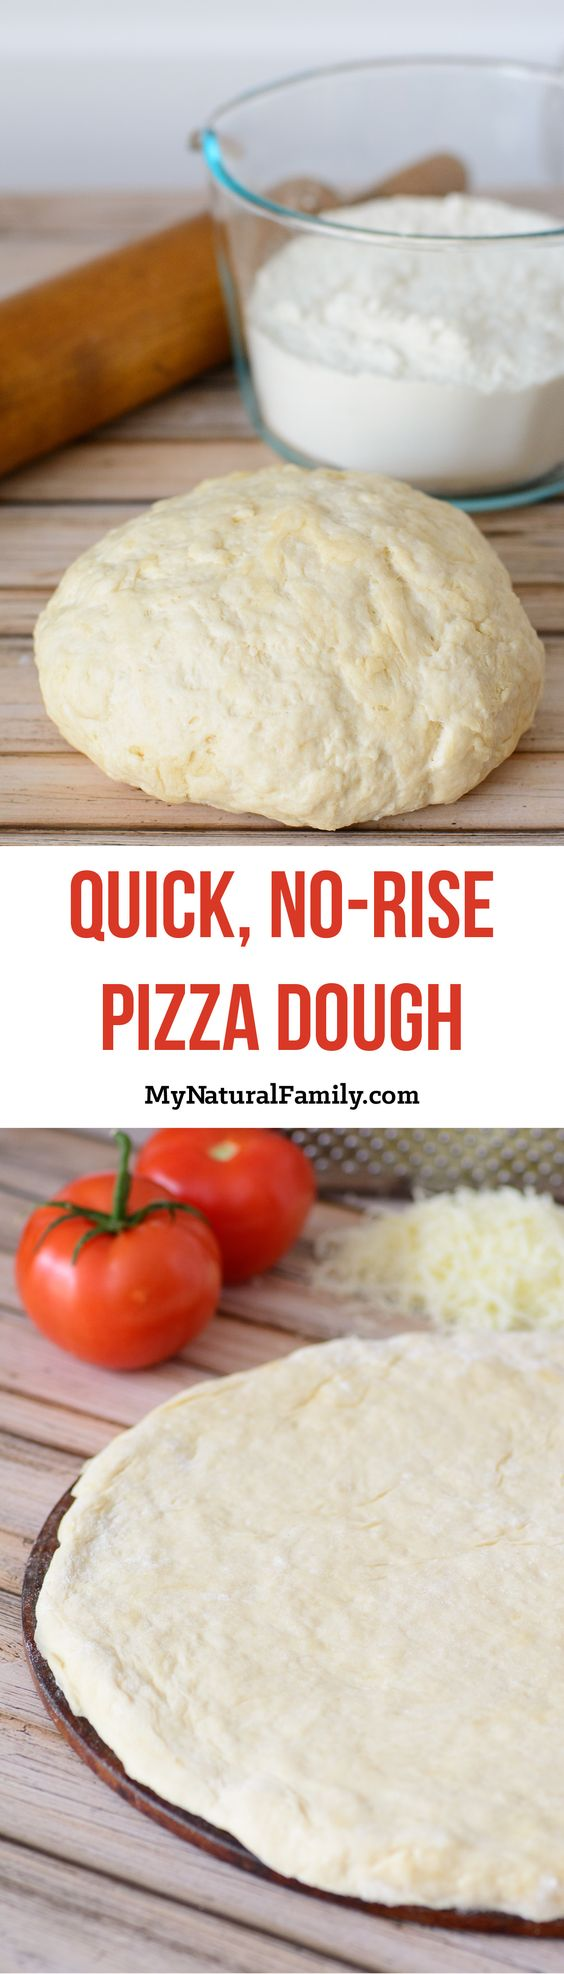 This pizza dough looks quick and simple and I love how it doesn't have to rise. I can even easily make it Clean Eating by subbing out equal parts spelt flour for the white flour.